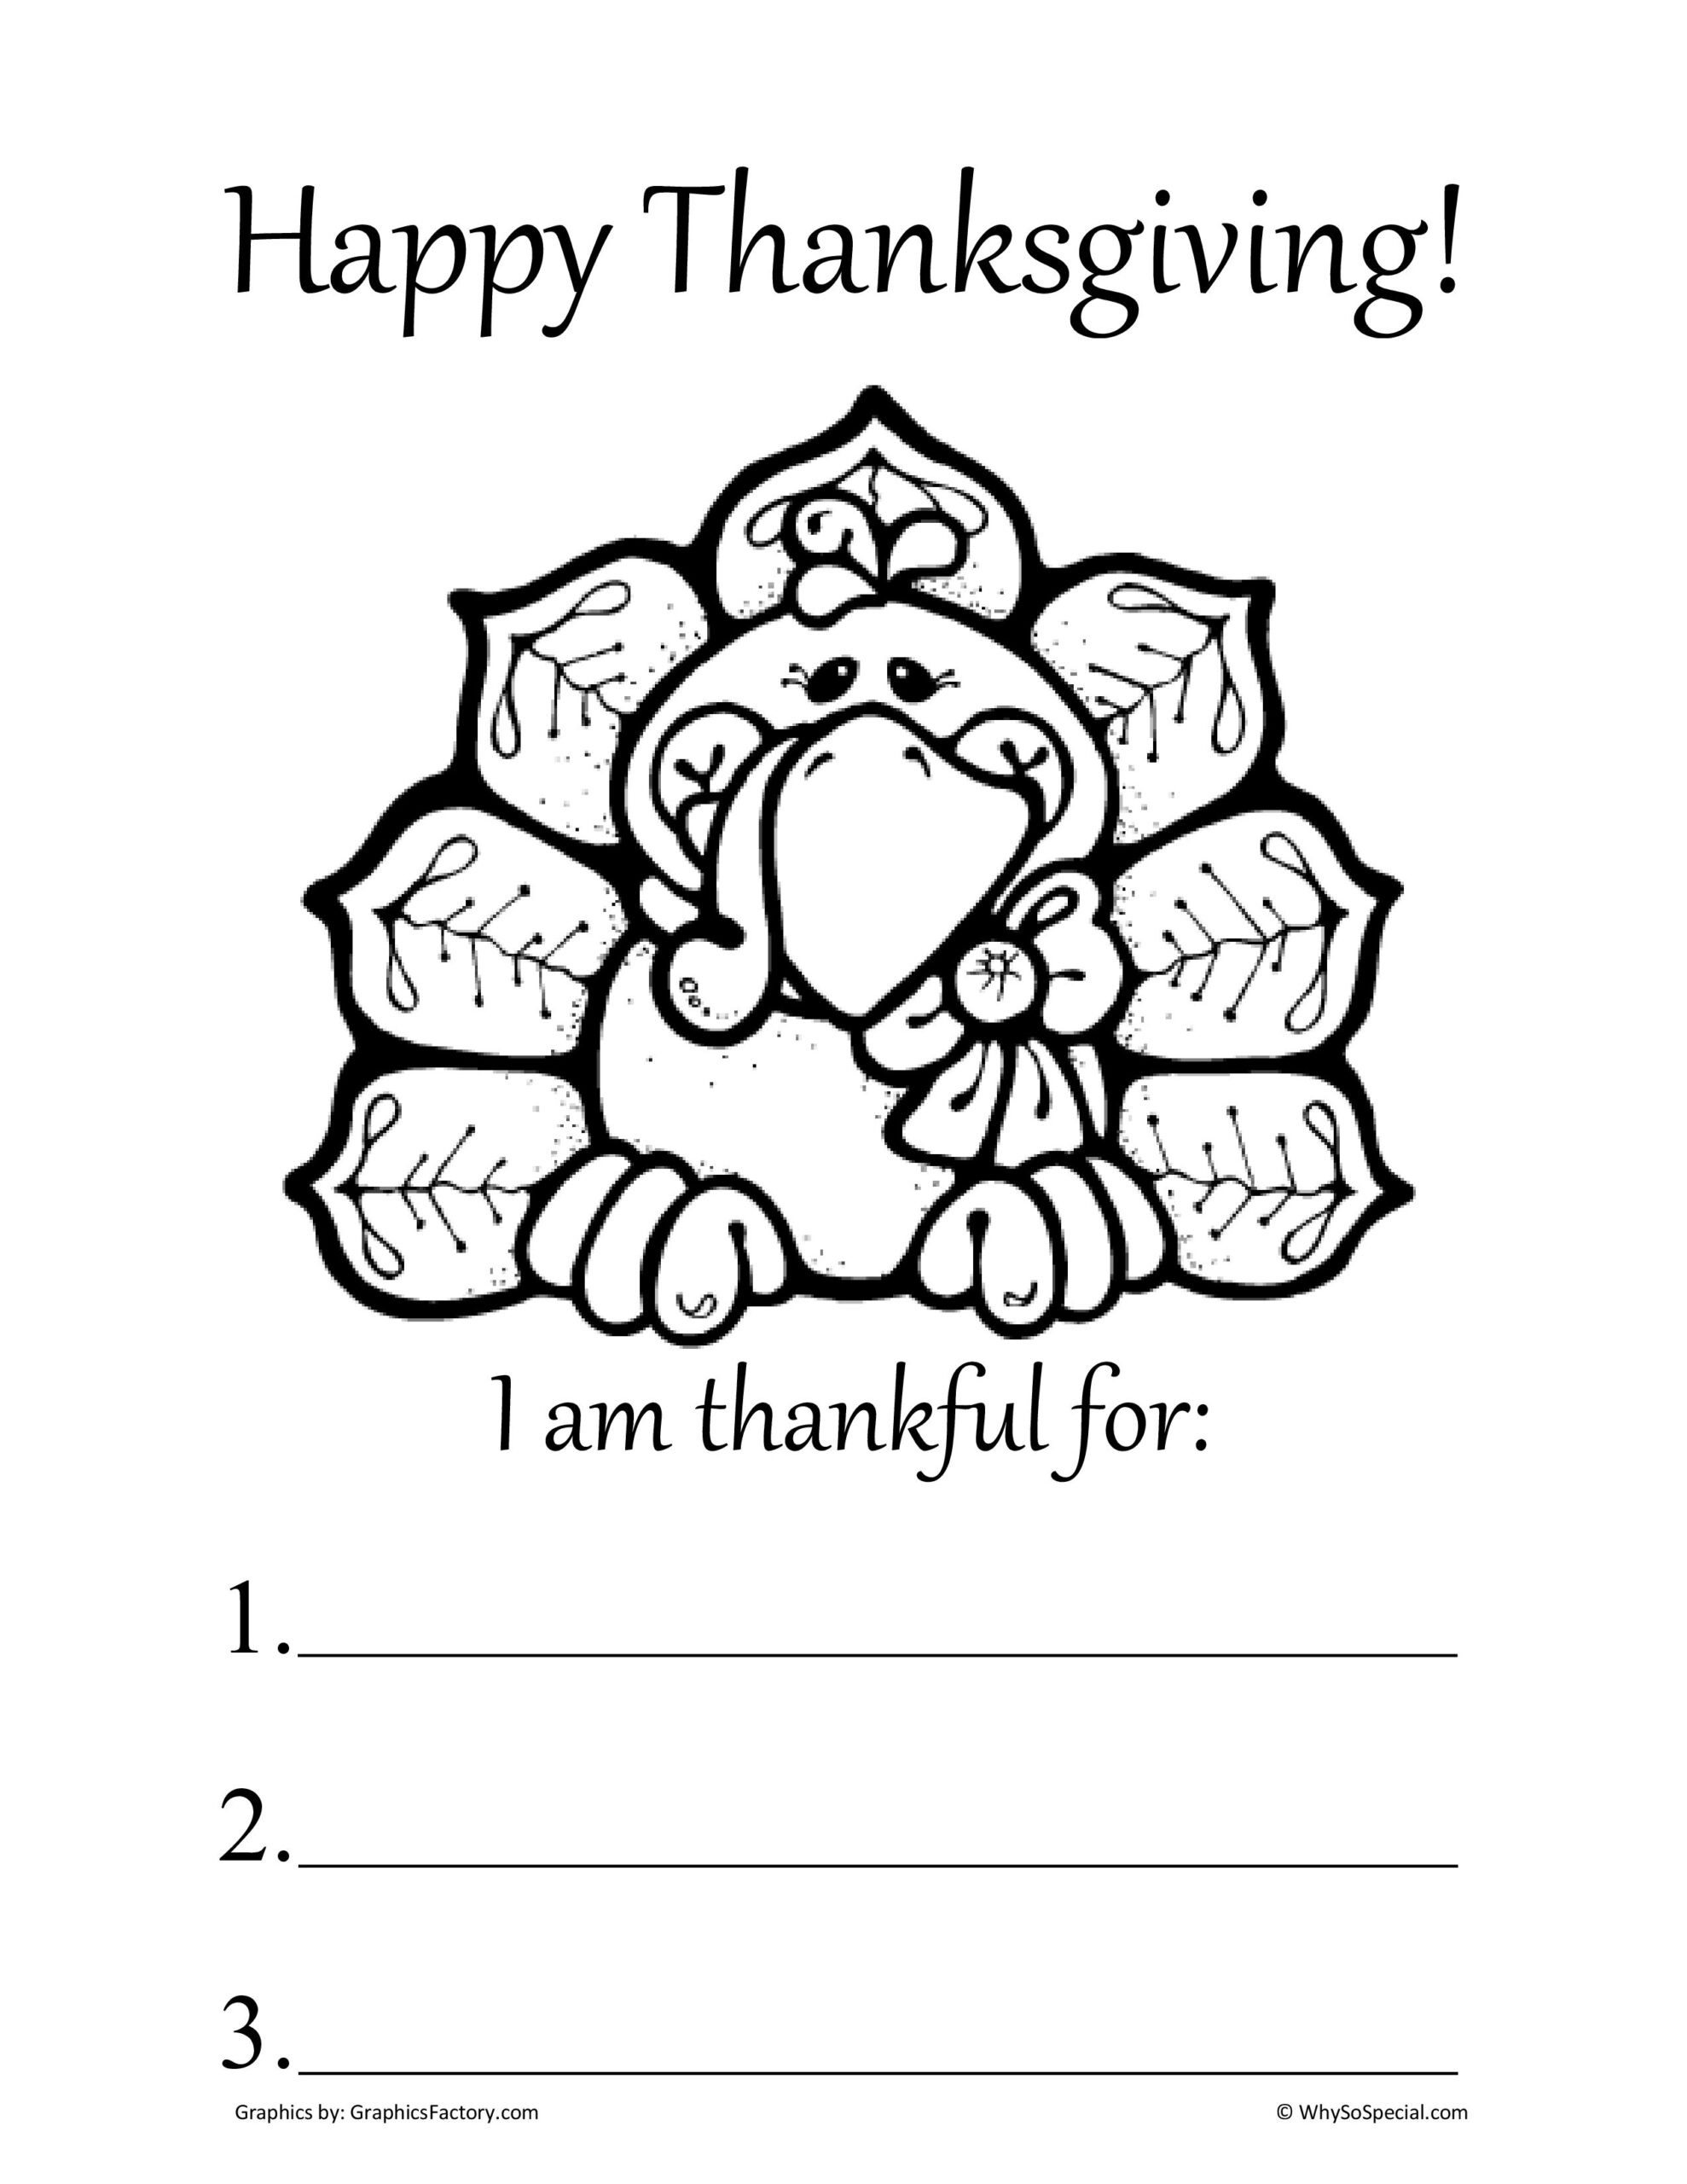 1st Grade Thanksgiving Worksheets Image Result for Thanksgiving Worksheets First Grade Free